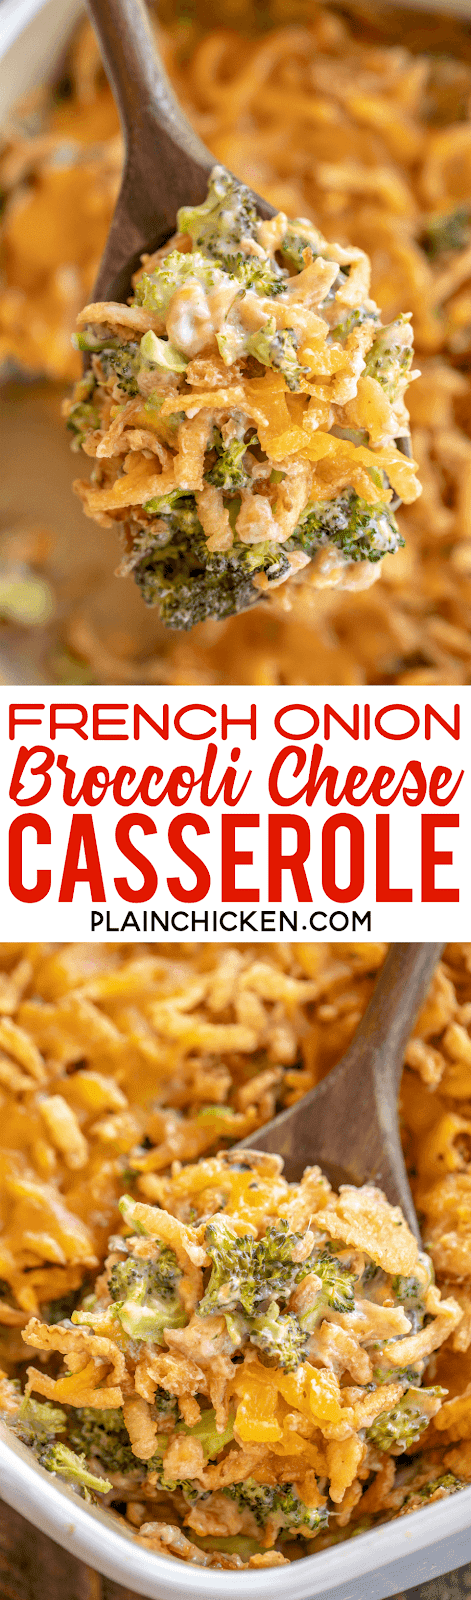 French Onion Broccoli Cheese Casserole - hands down the BEST broccoli casserole! Even our broccoli haters loved this casserole. Only 5 ingredients - broccoli, cream of mushroom soup, french onion dip, cheddar cheese and french fried onions. Can assemble ahead of time and refrigerate overnight. This was a HUGE hit in our house! #broccoli #casserole #sidedish #vegetable